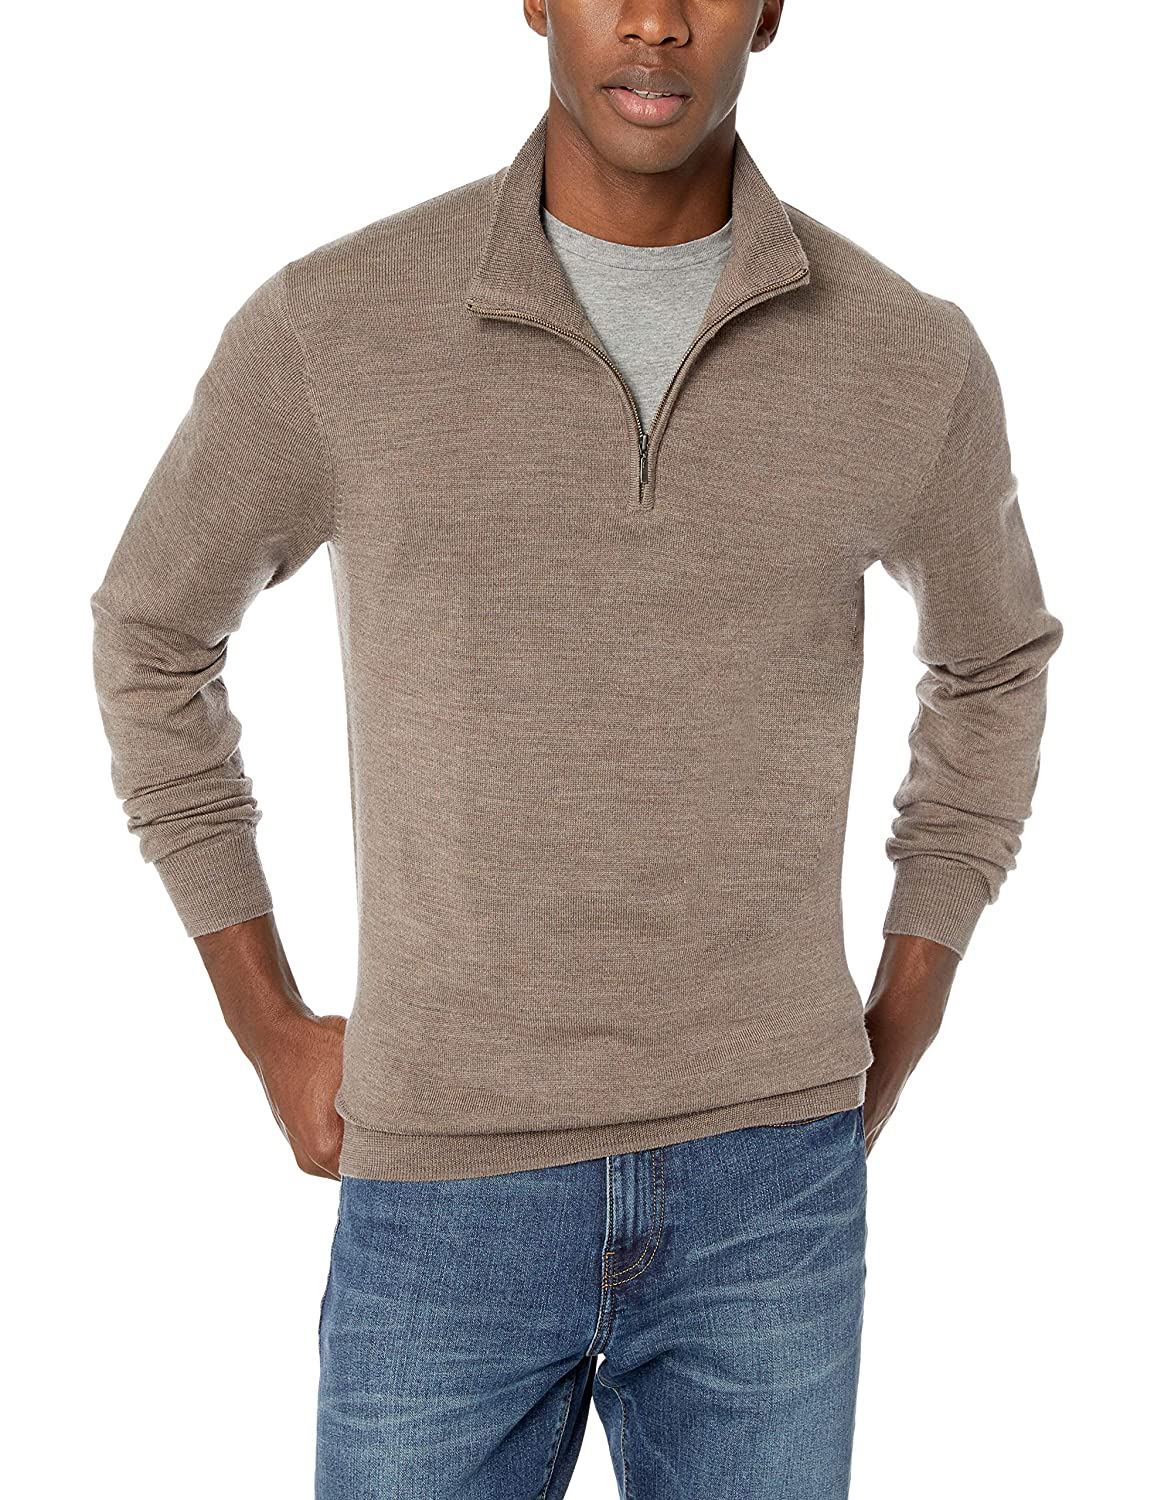 Goodthreads Merino Wool Quarter Zip Sweater Felpa Uomo